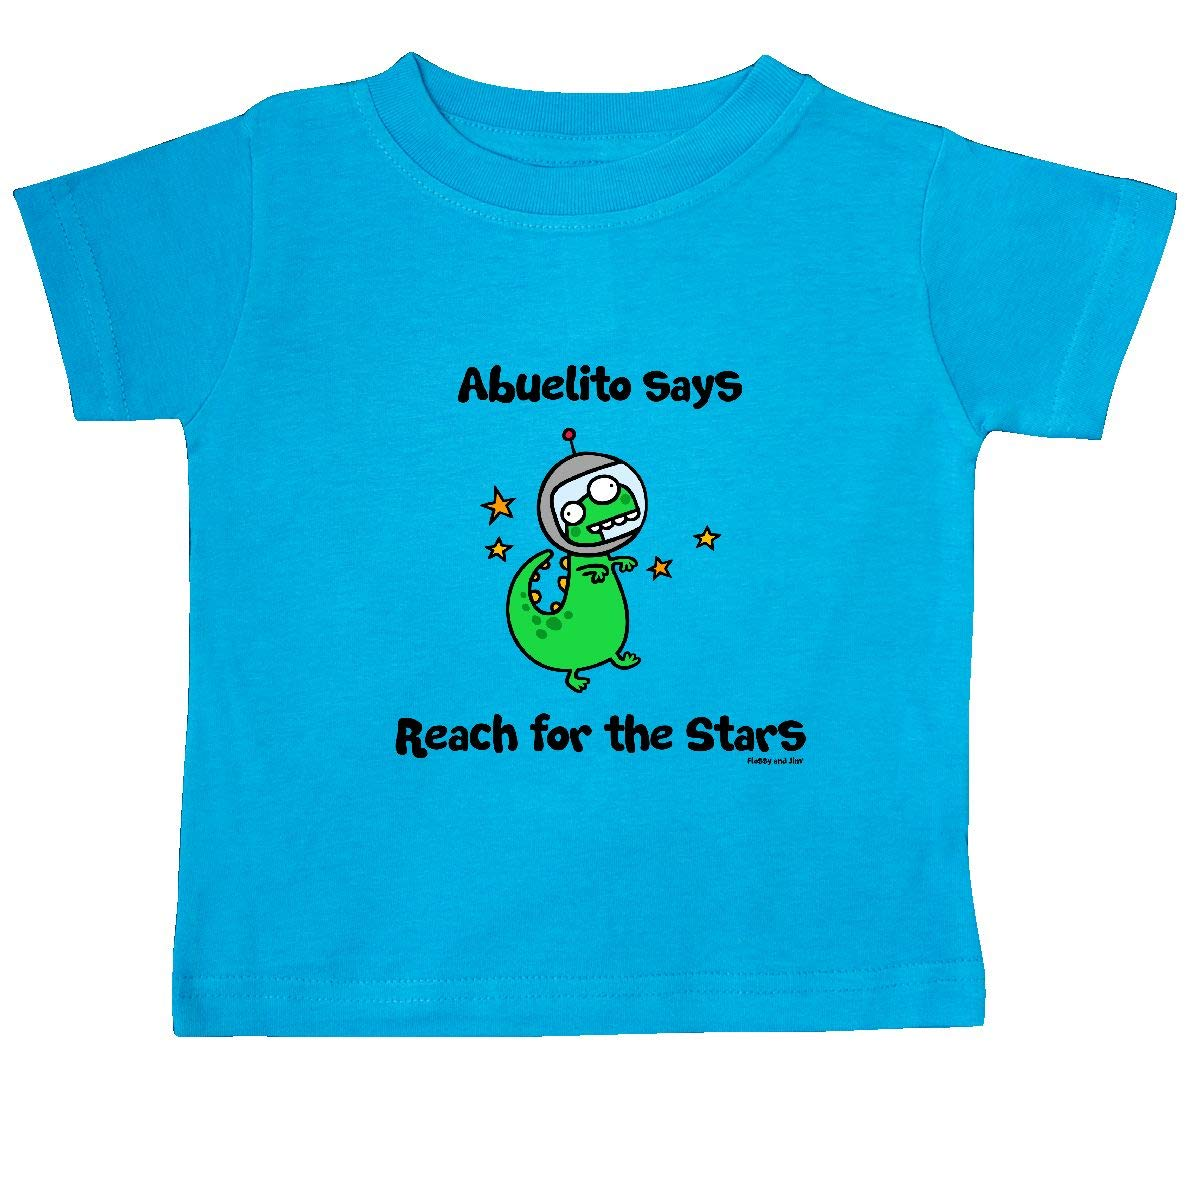 inktastic Abuelito Says Reach for The Stars Baby T-Shirt Flossy and Jim